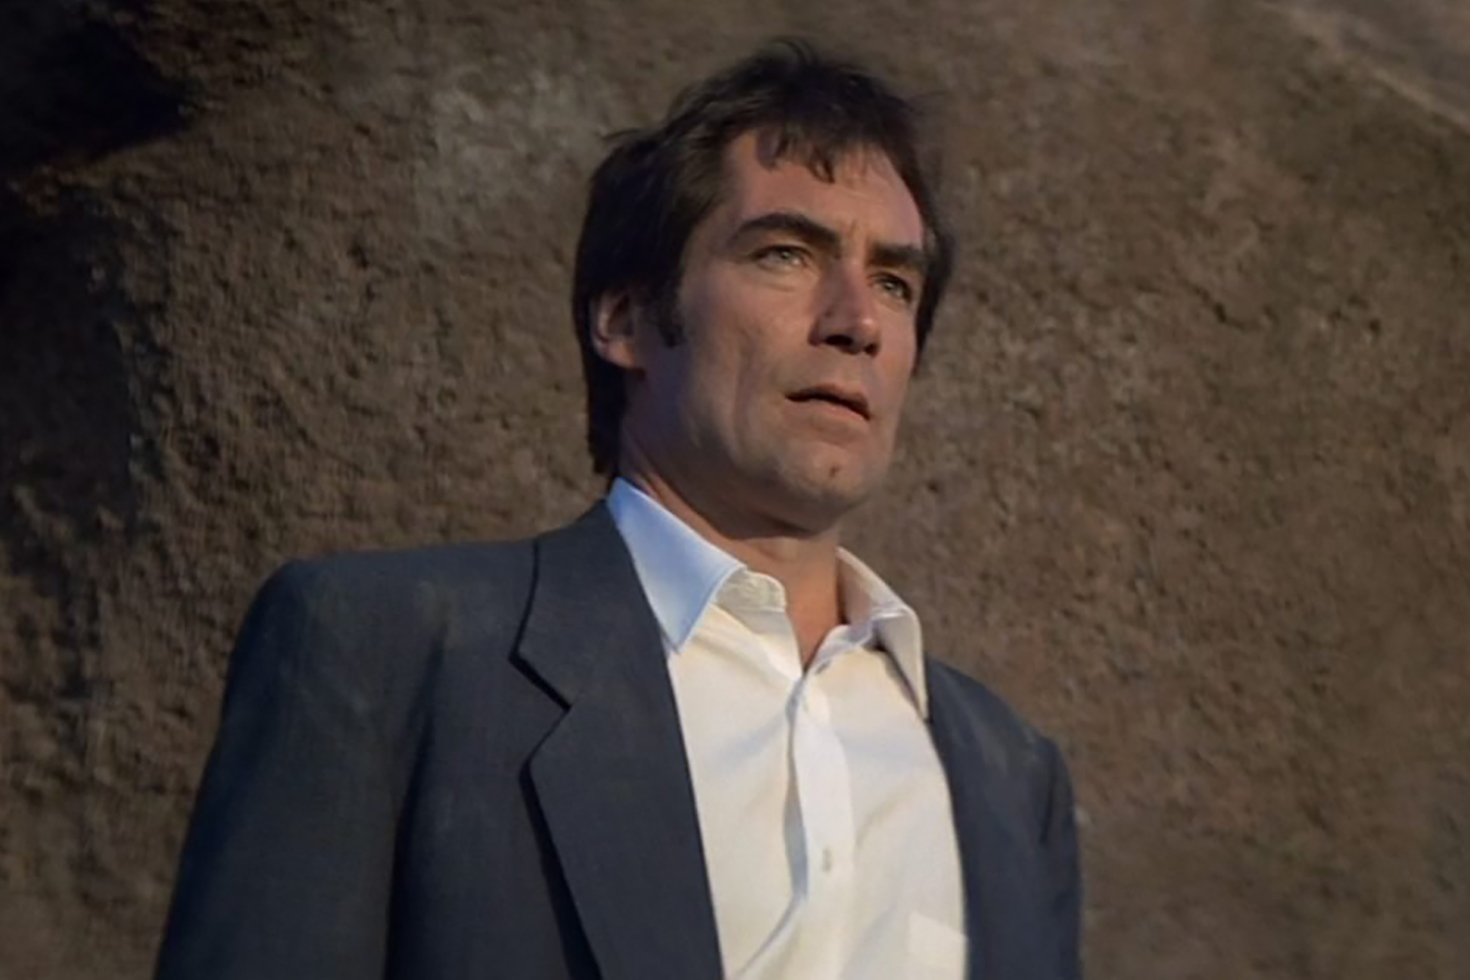 Timothy Dalton dons a simple navy suit and white shirt in License to Kill.